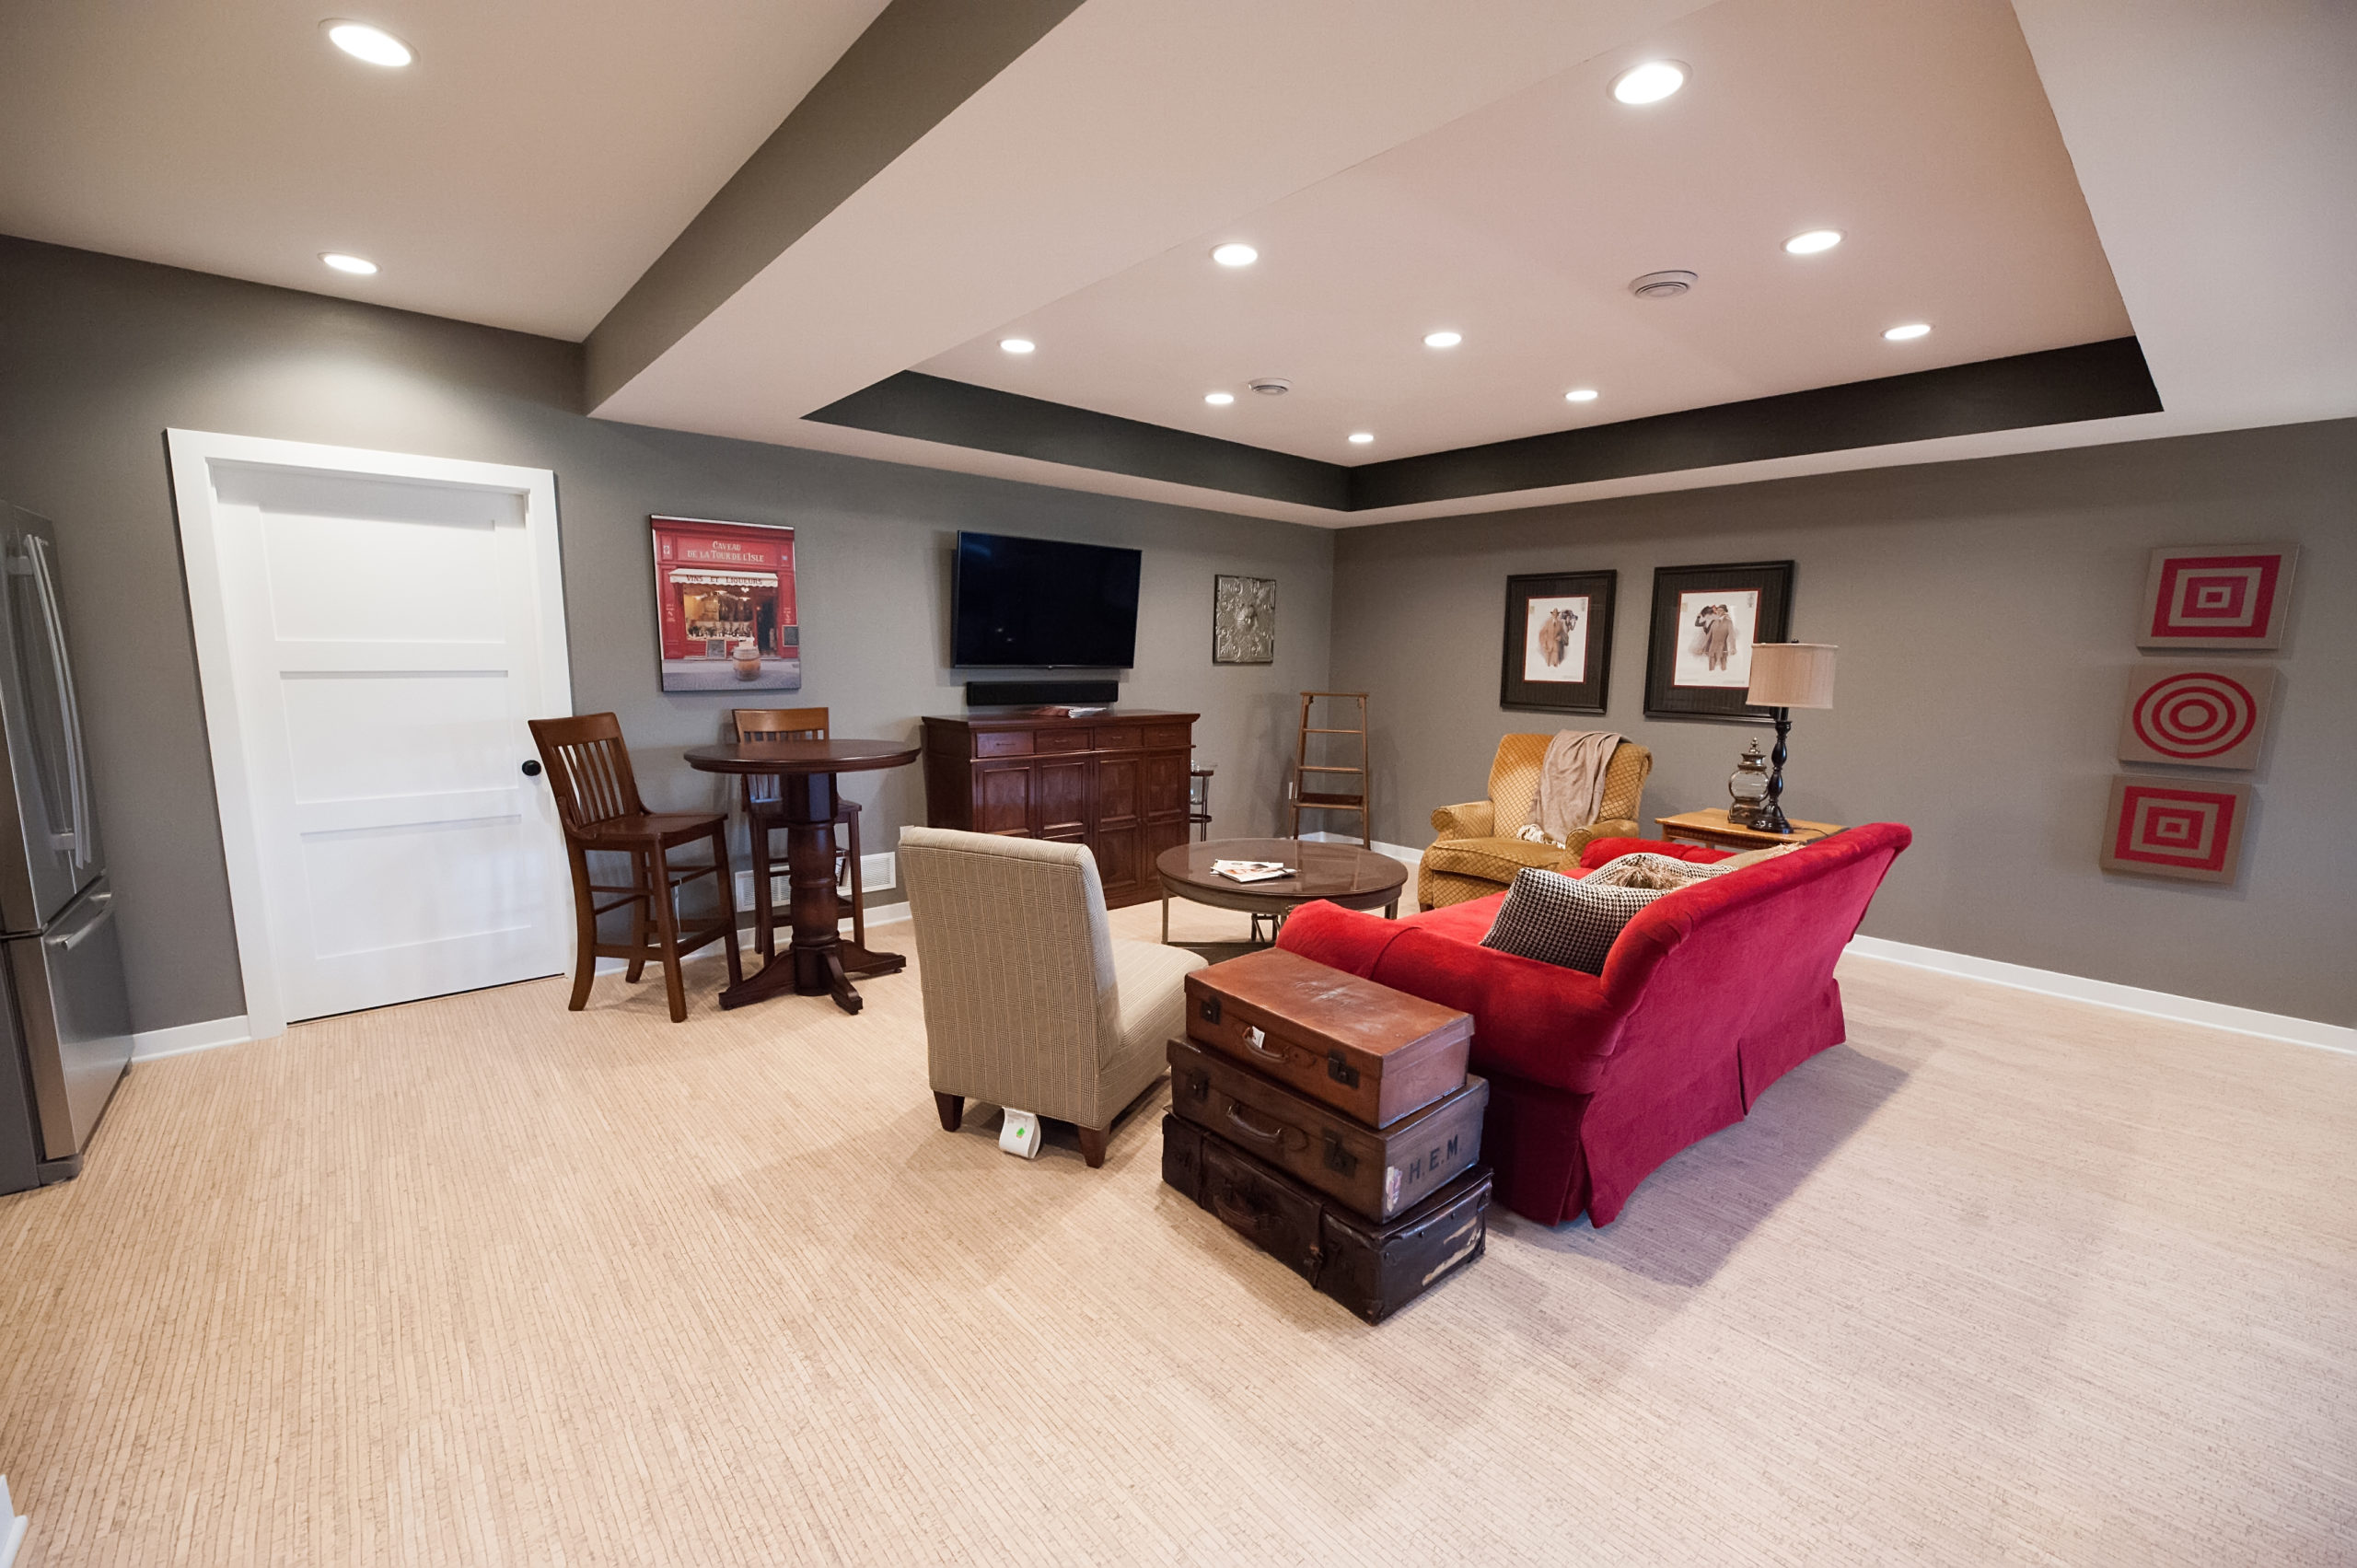 Basement Remodel - Dimension Inc. - $500 Amazon Gift Card Offer with Signed Design Contract